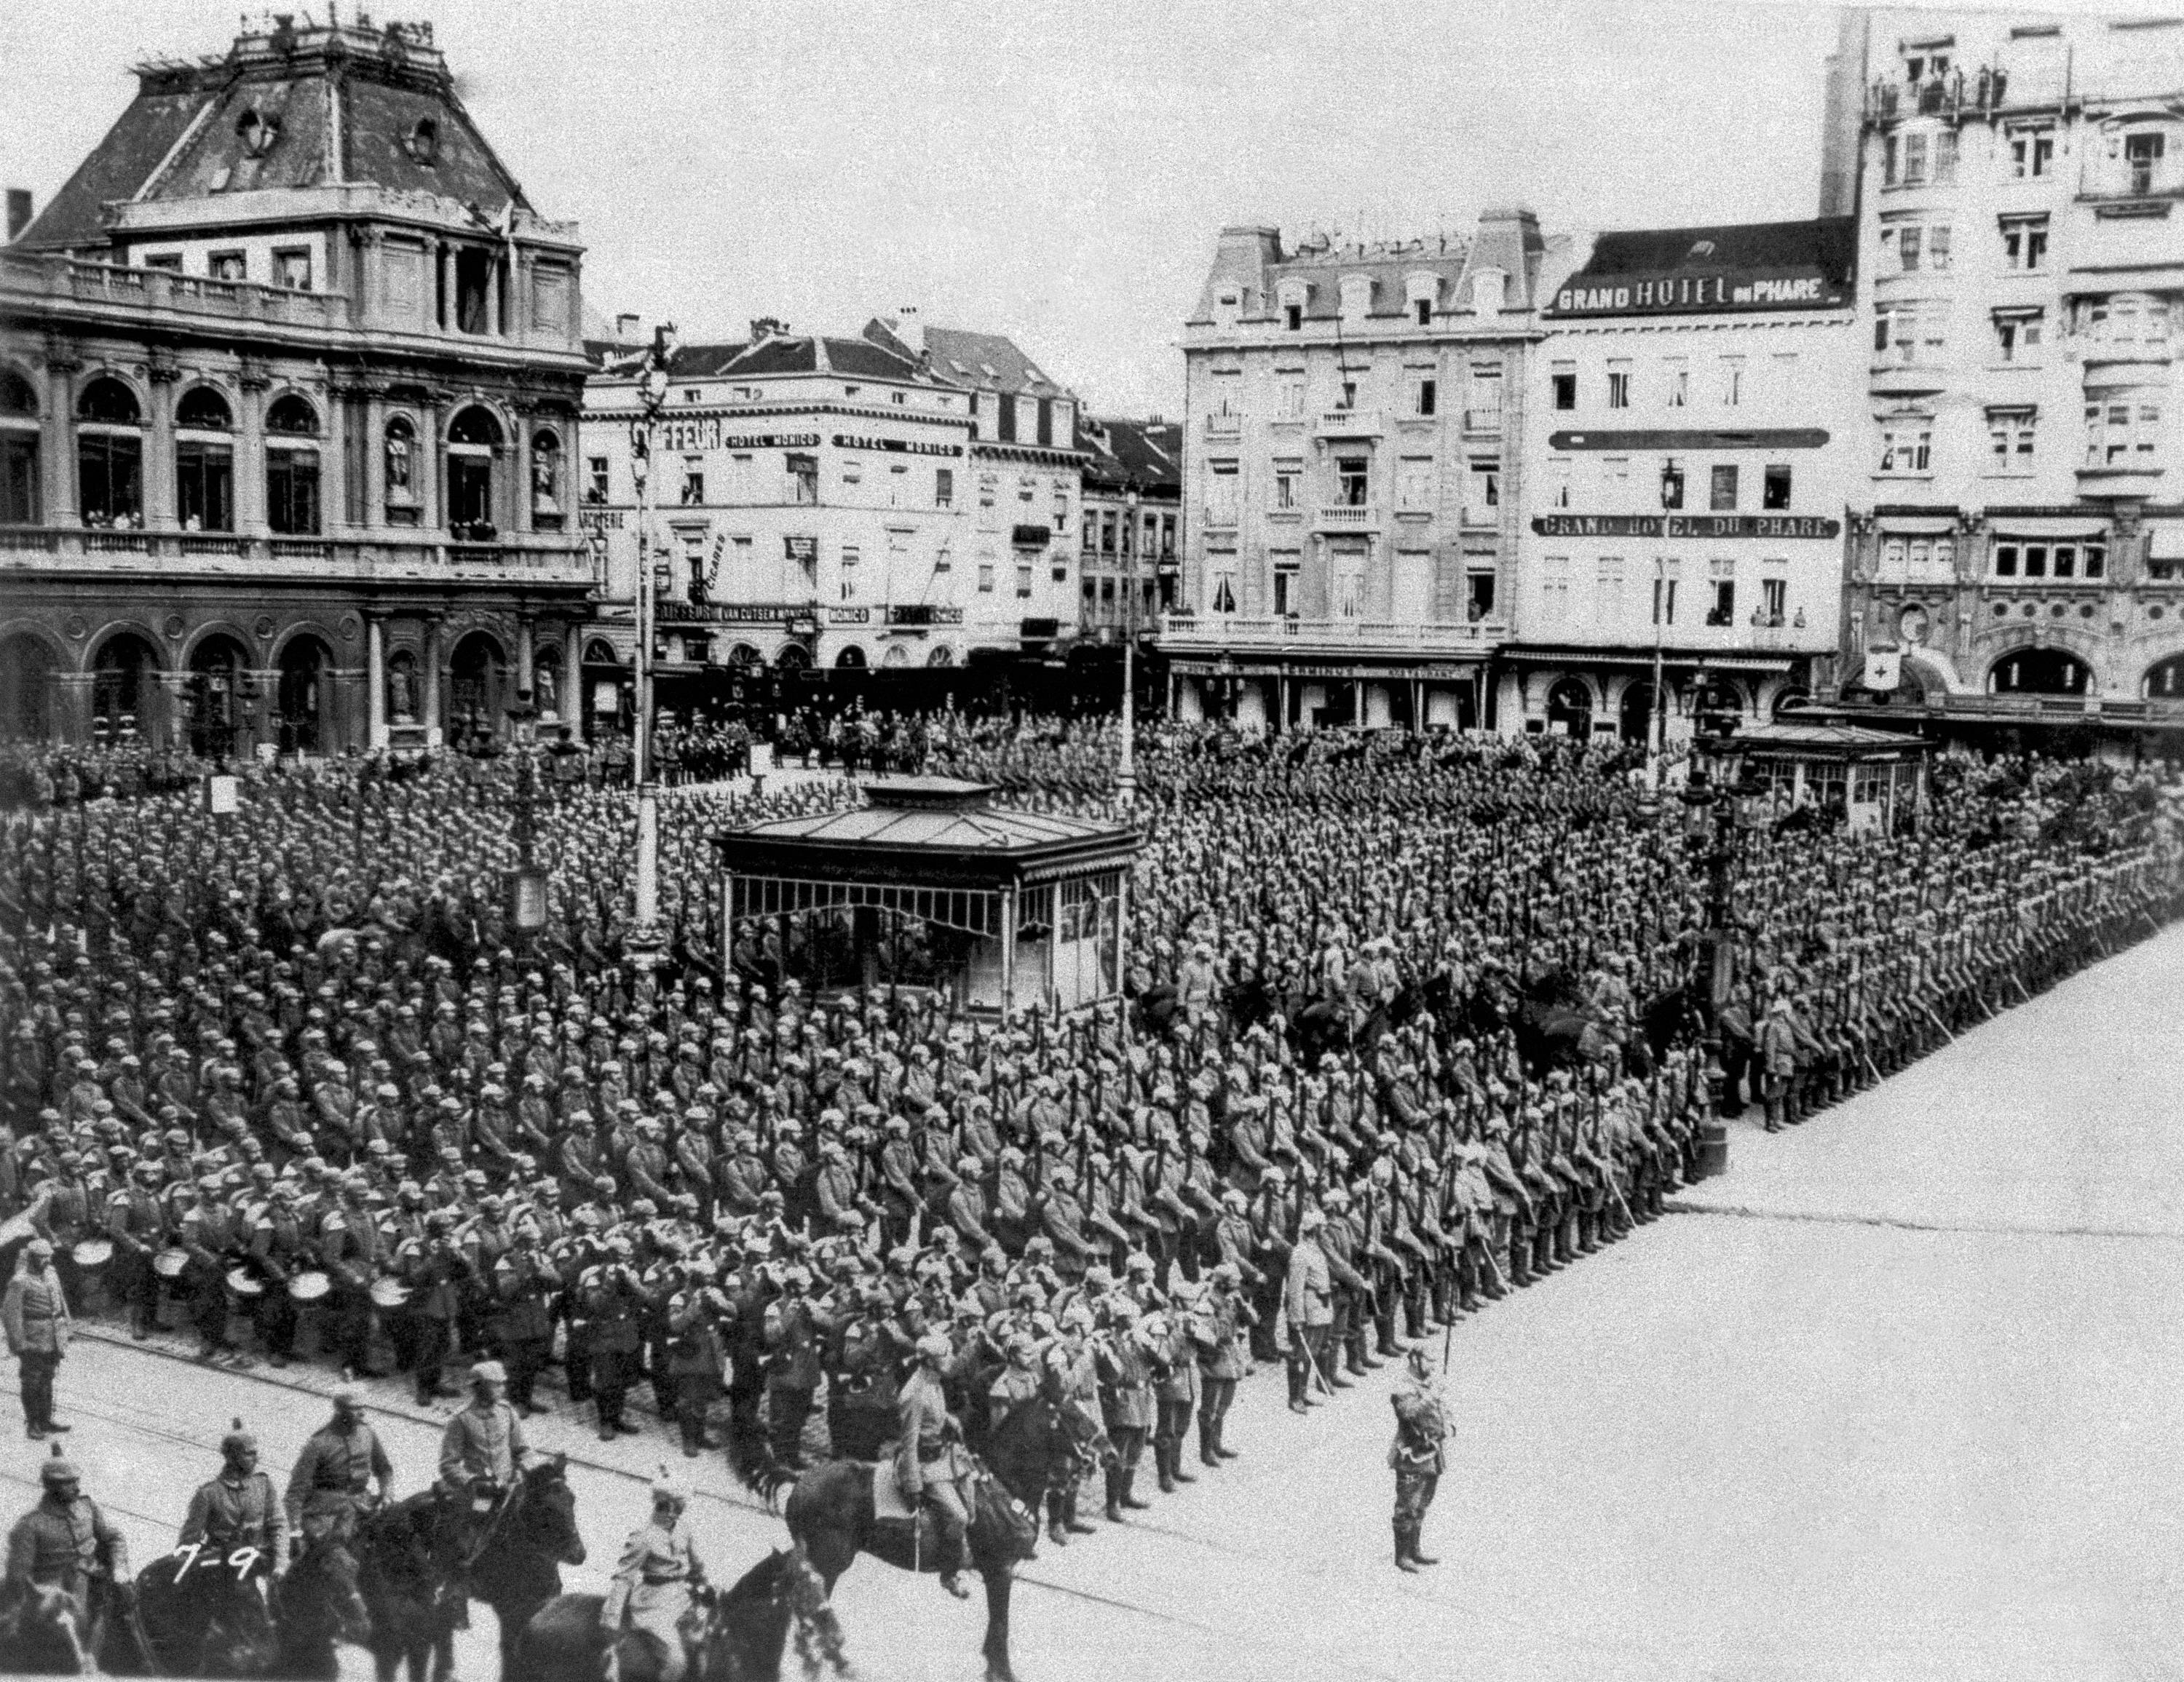 NINE OF 100: In this August 1914 file photo, German troops stand in formation during the occupation of Brussels.